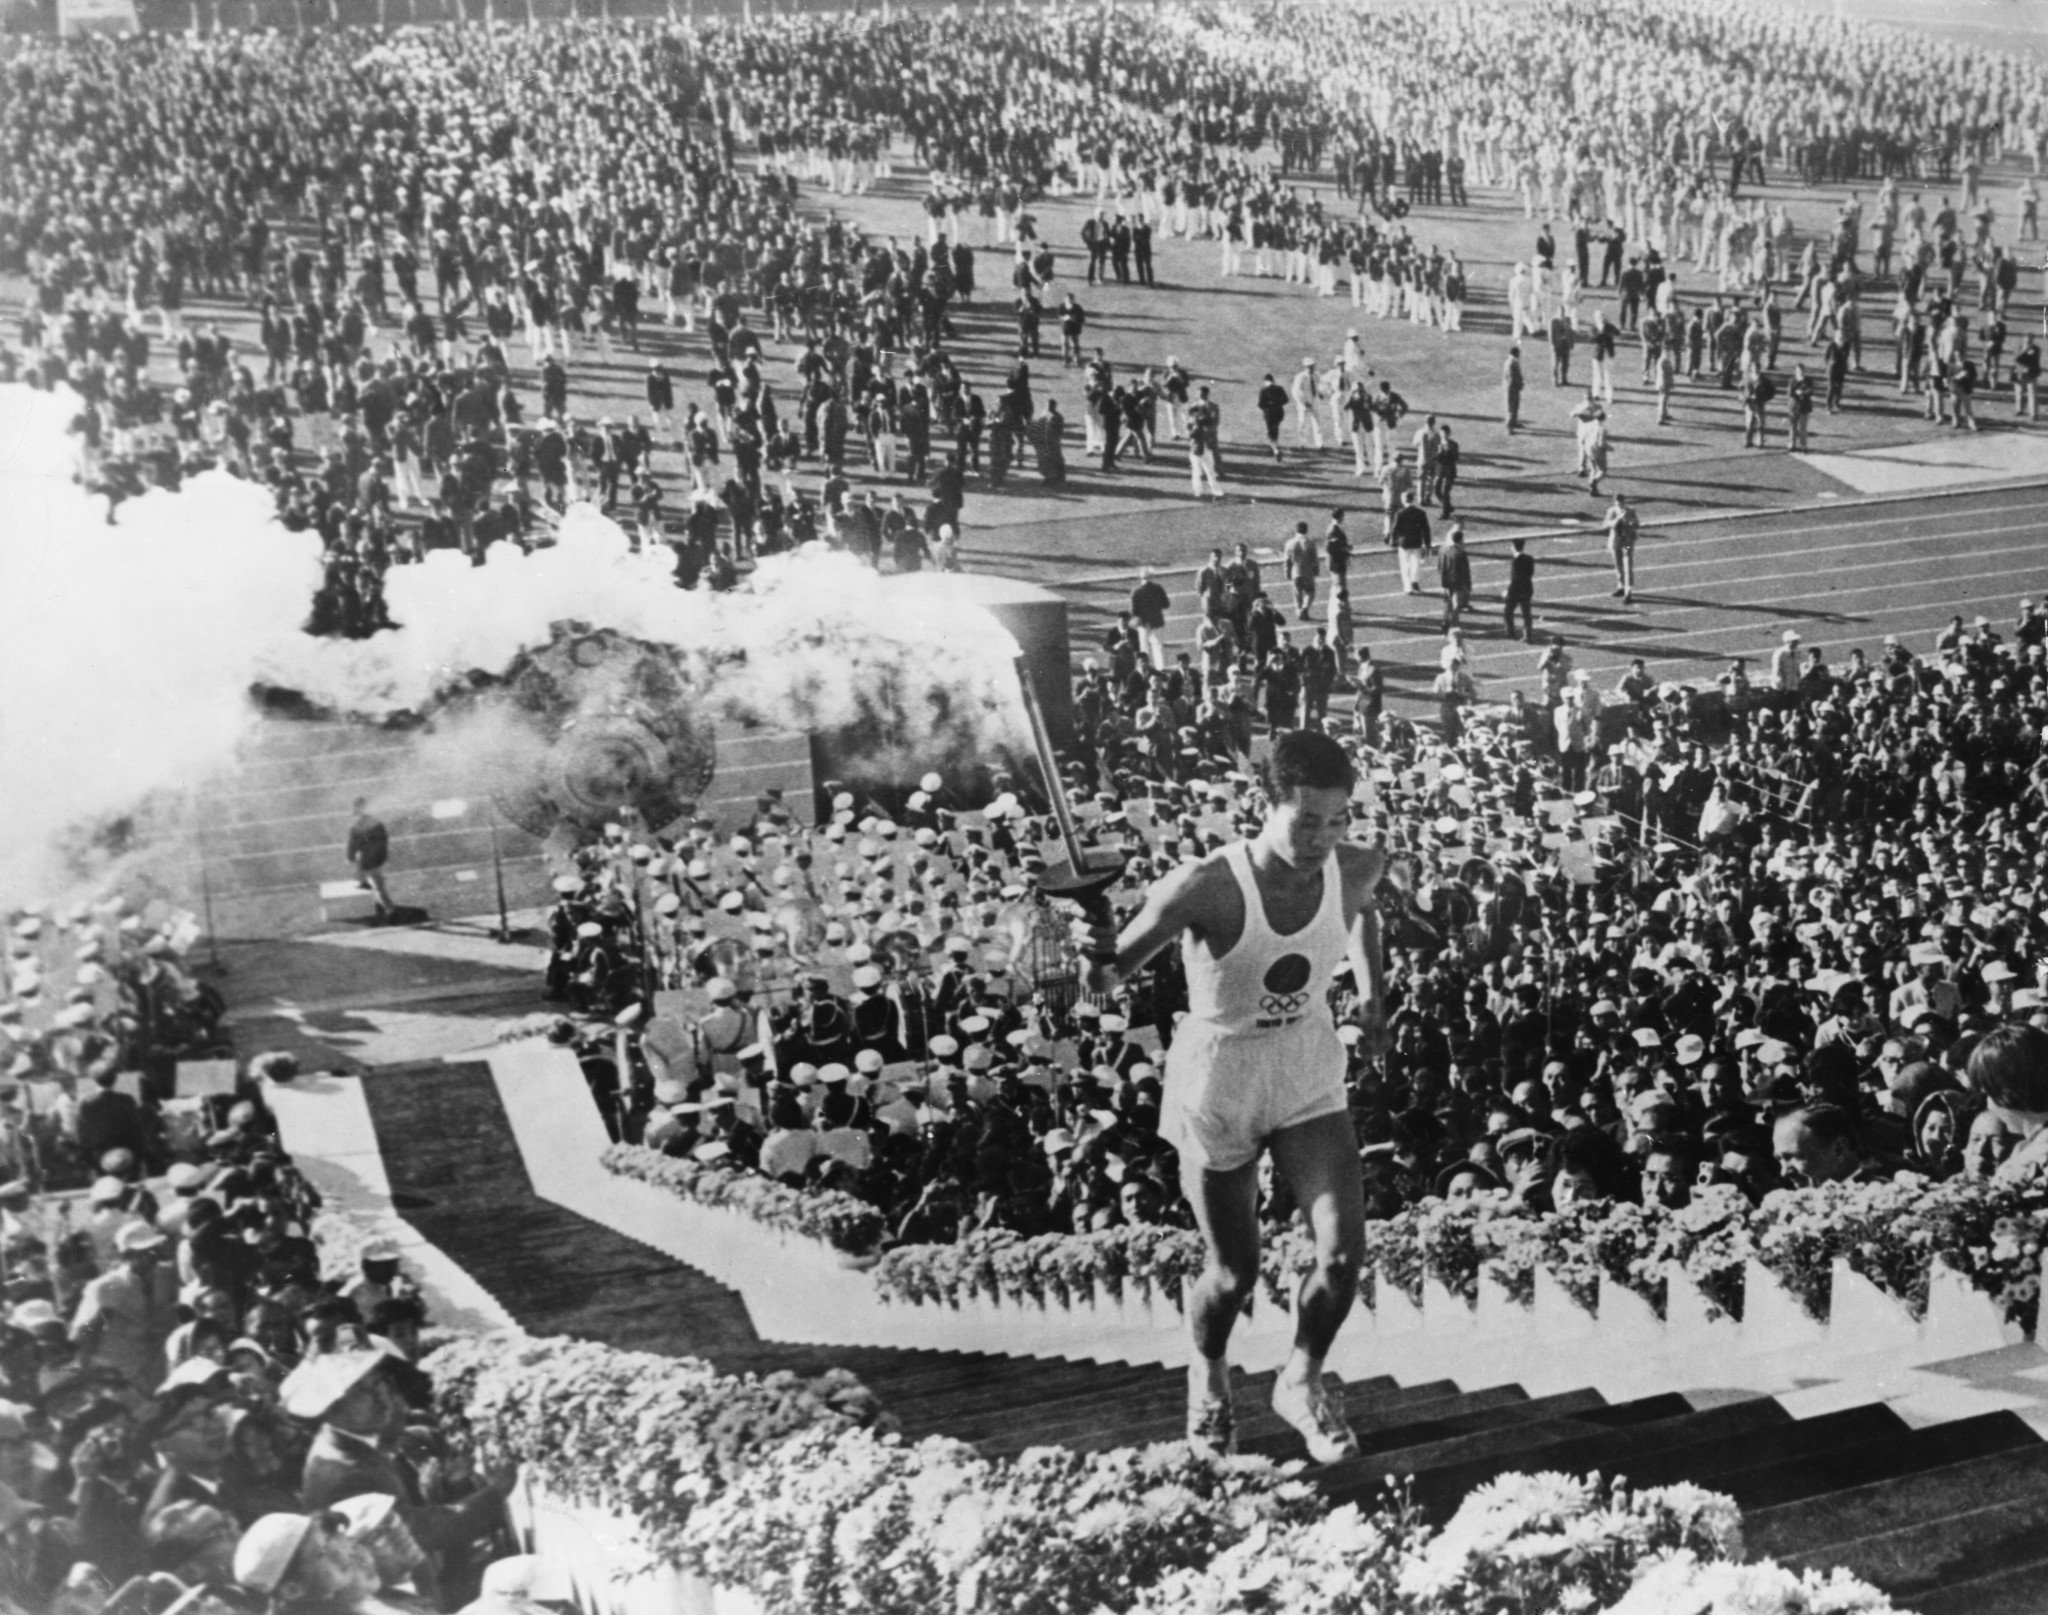 Remembering the start of Tokyo 1964 - a Games seen as a symbol of hope and confidence